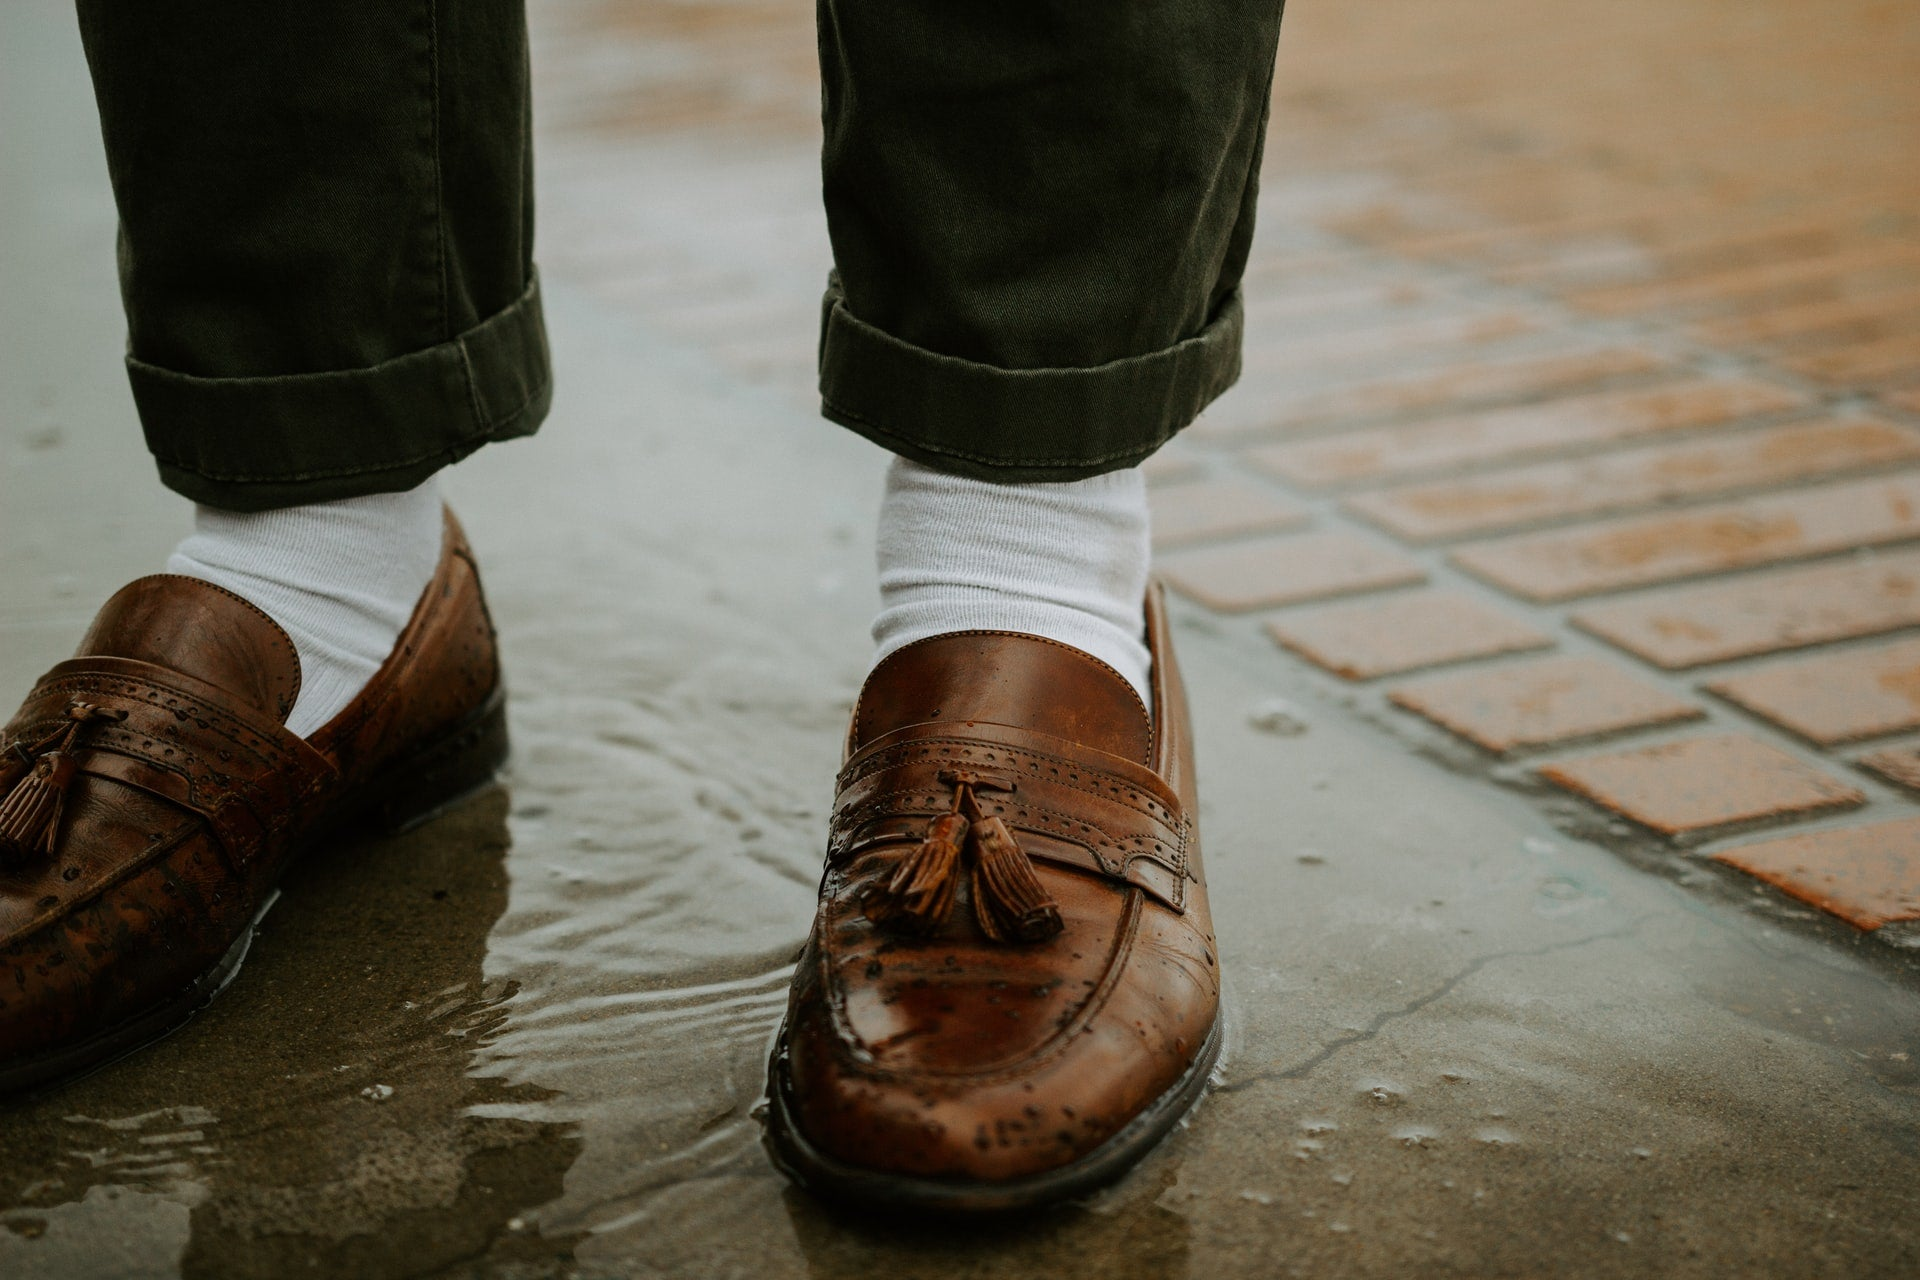 A close-up of brown tassel loafers